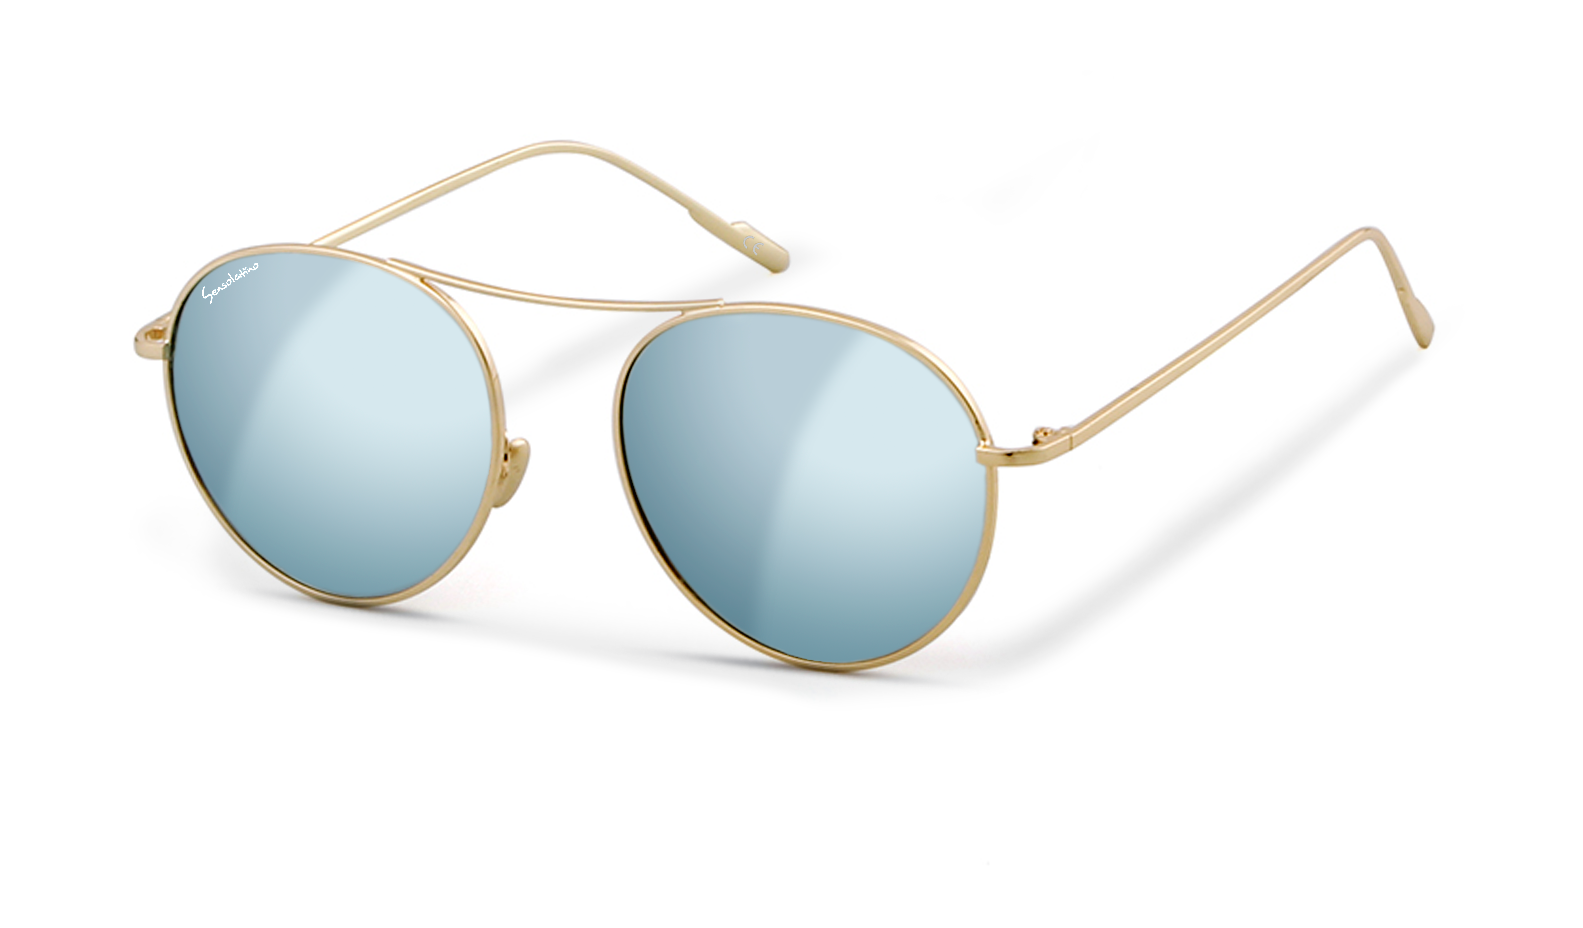 72cdb992da7 BALI WITH LIGHT BLUE POLARIZED LENSES